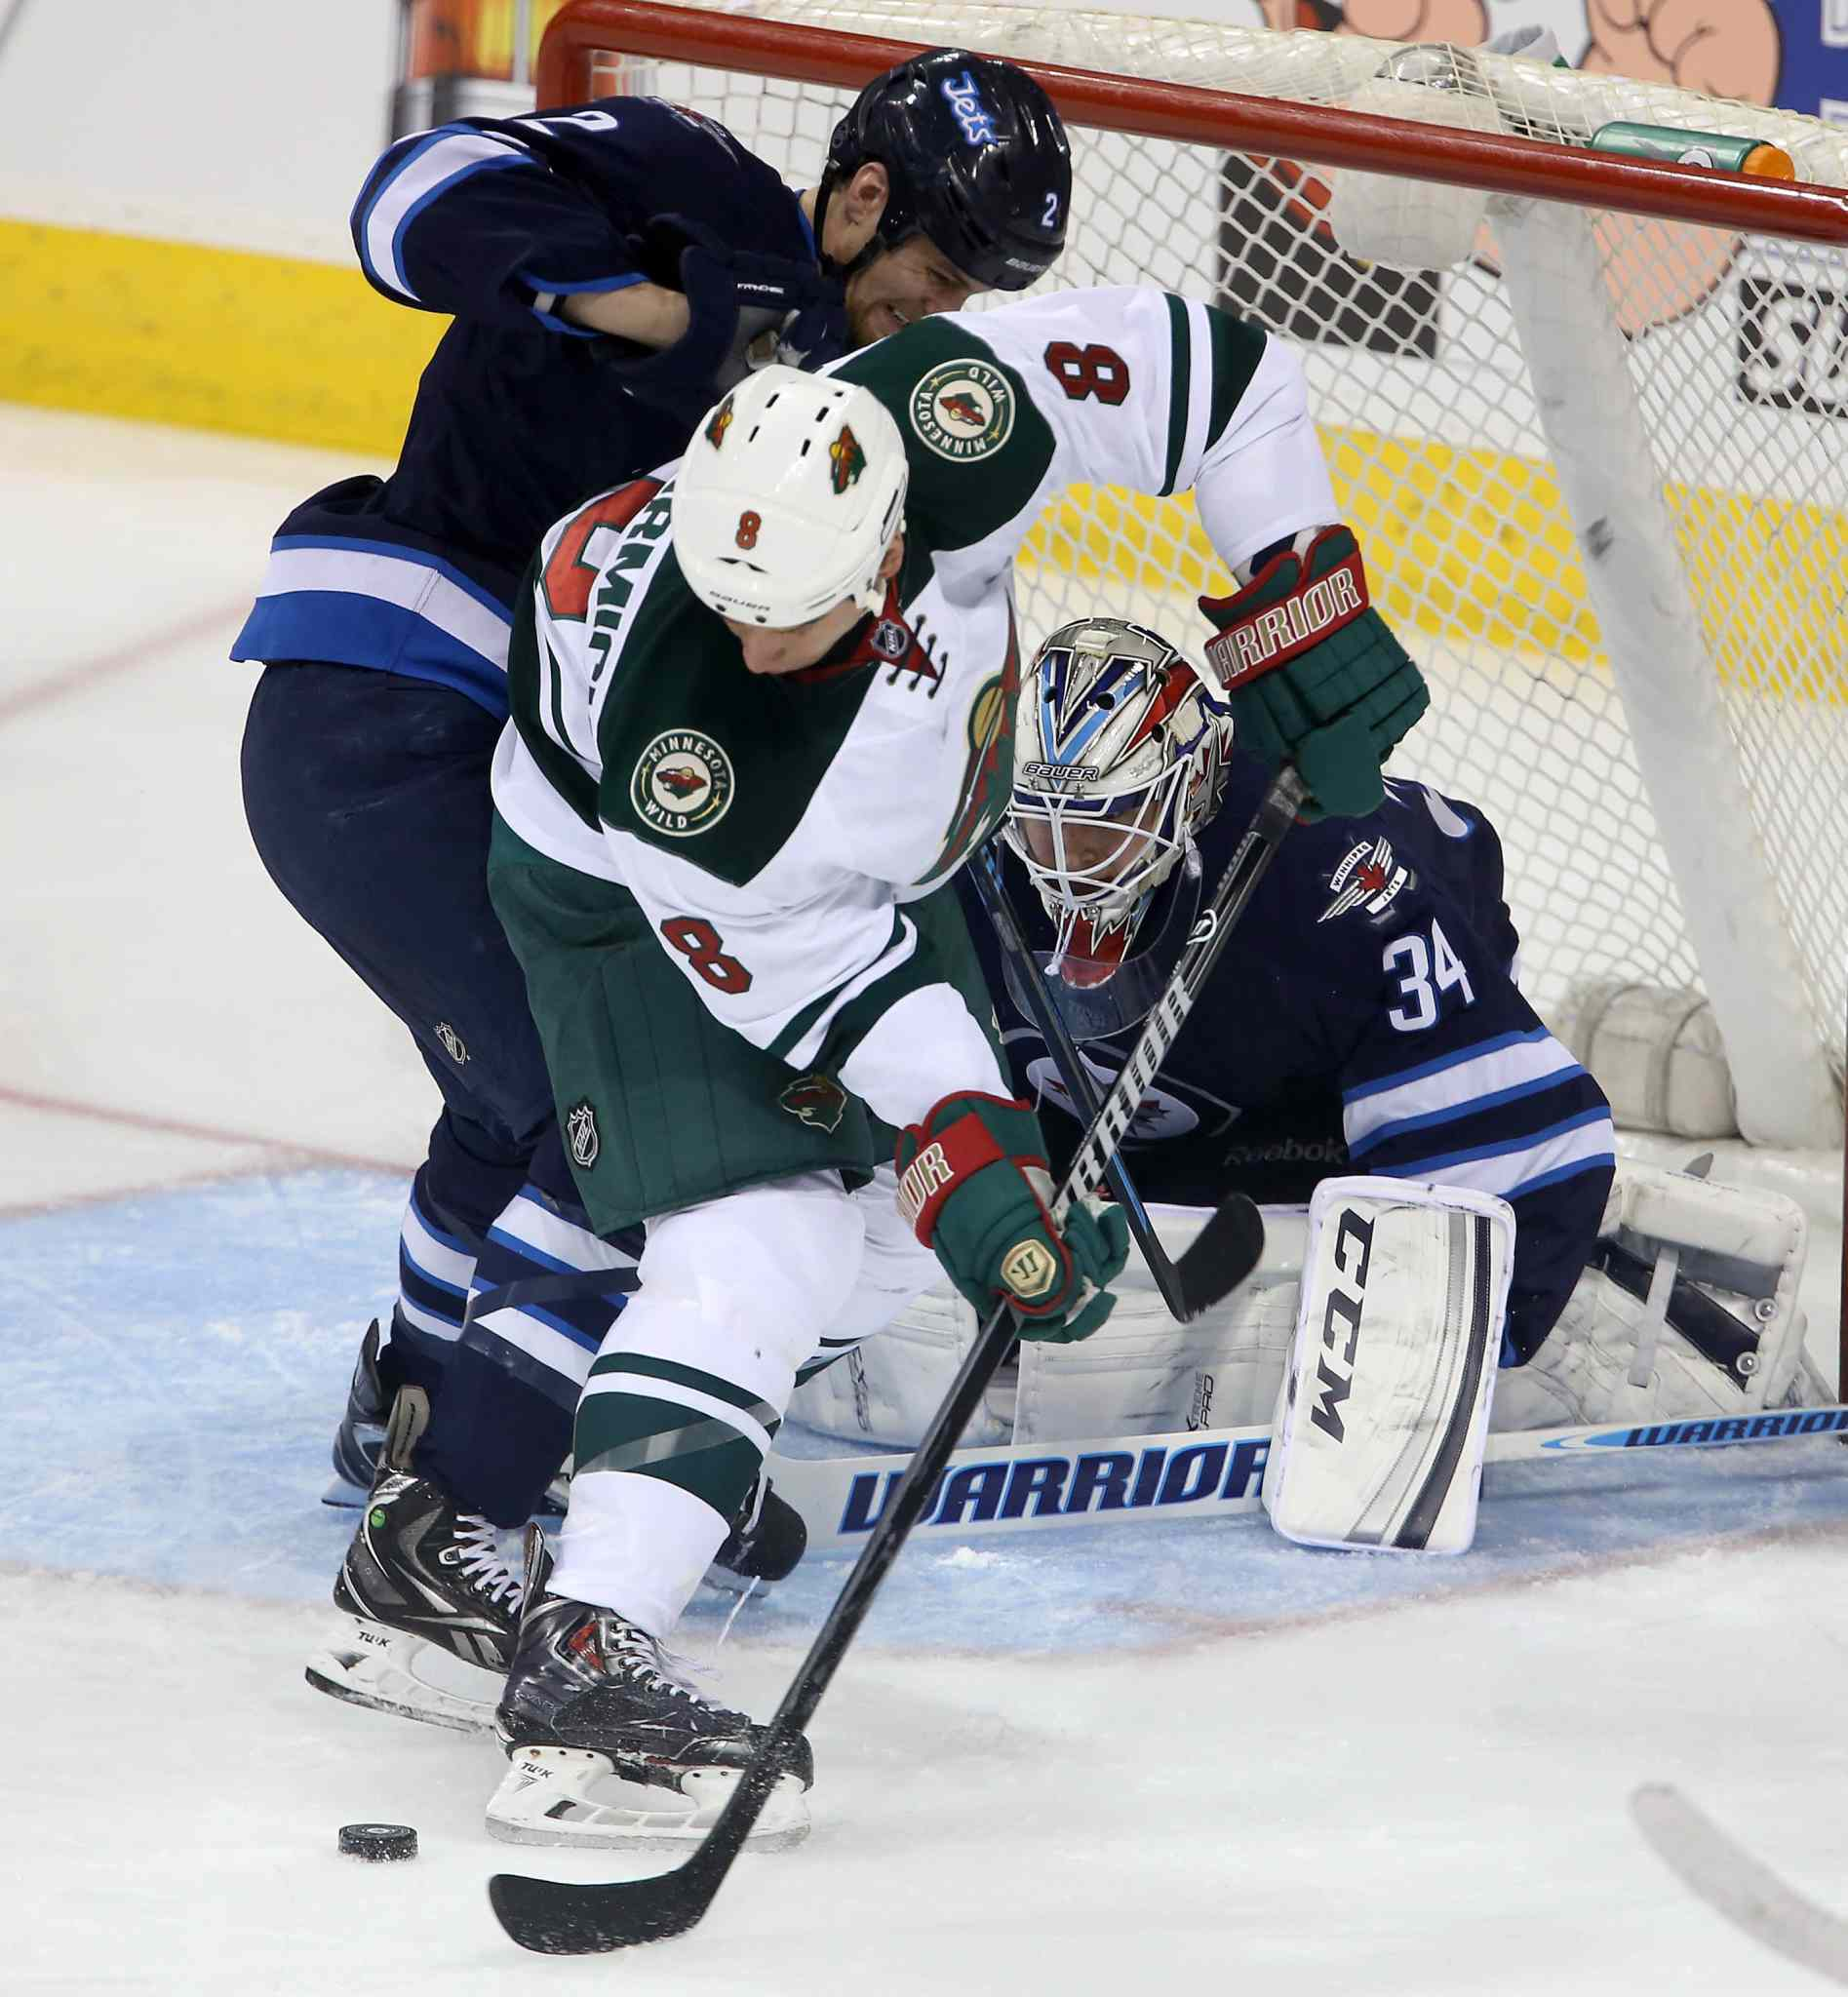 Jets defenceman Adam Pardy battles with the Wild's Cody McCormick in front of Jets goaltender Michael Hutchinson during the first period.